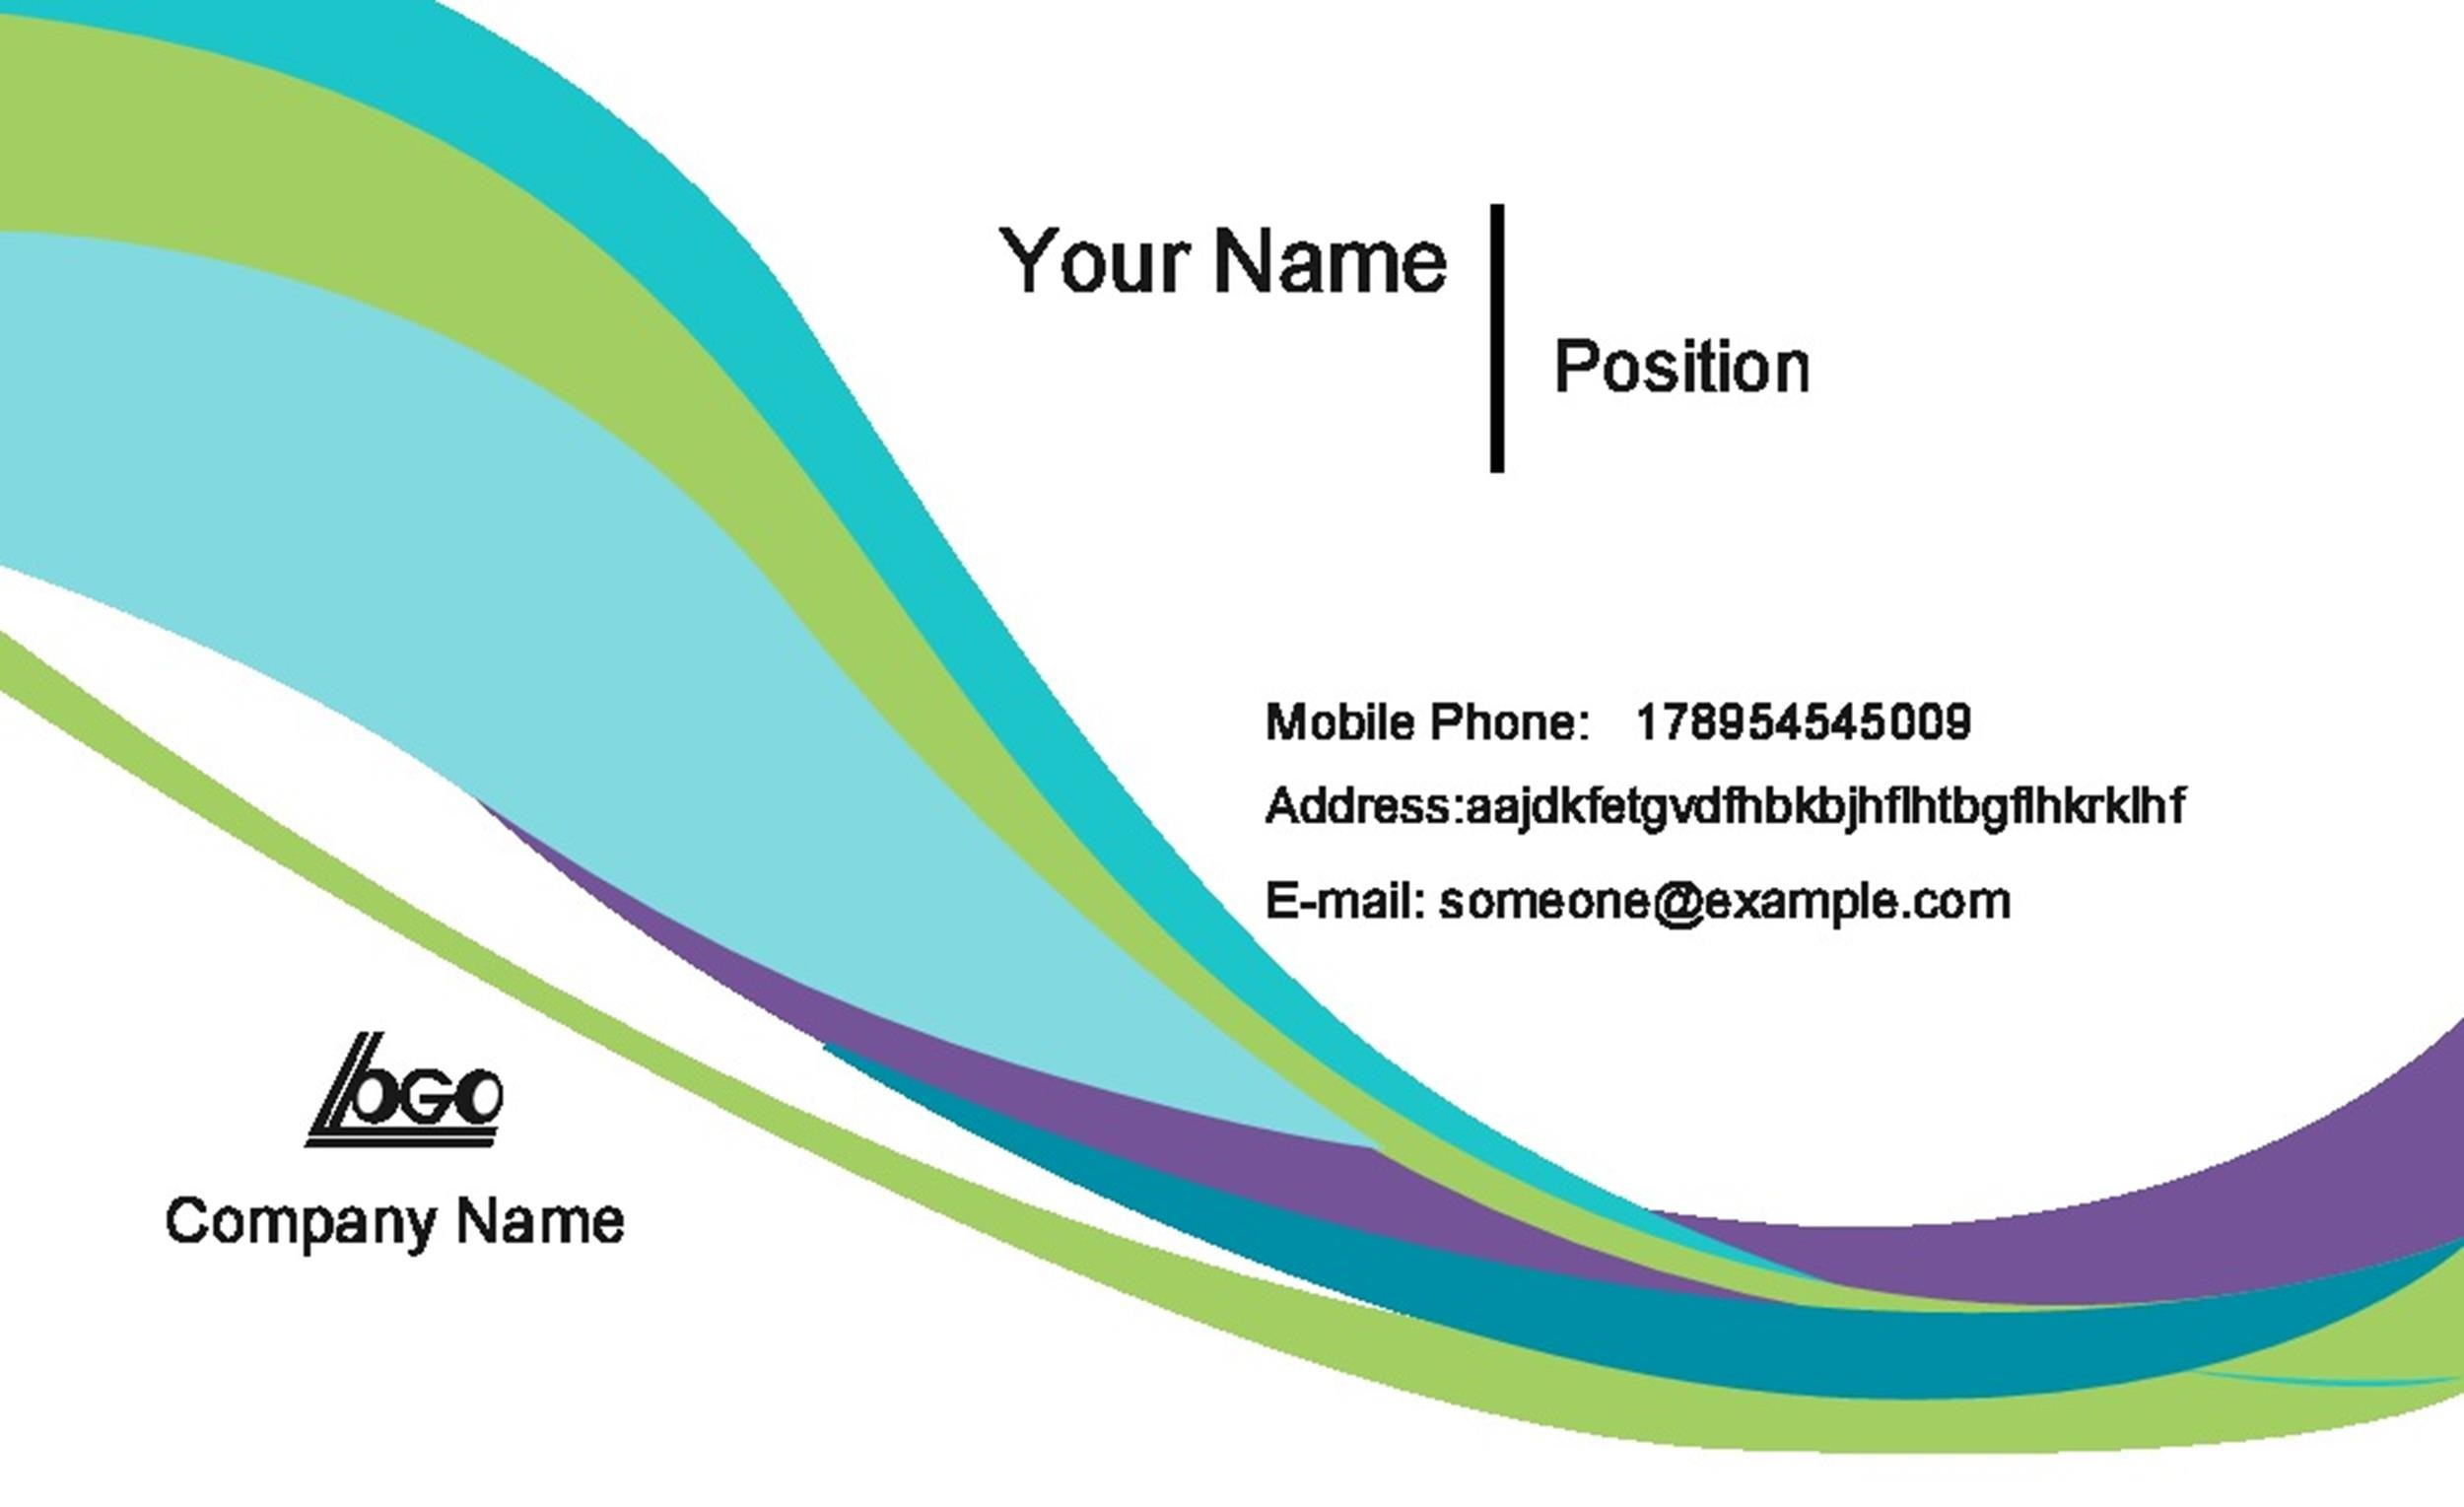 40+ Free Business Card Templates - Template Lab - name card example